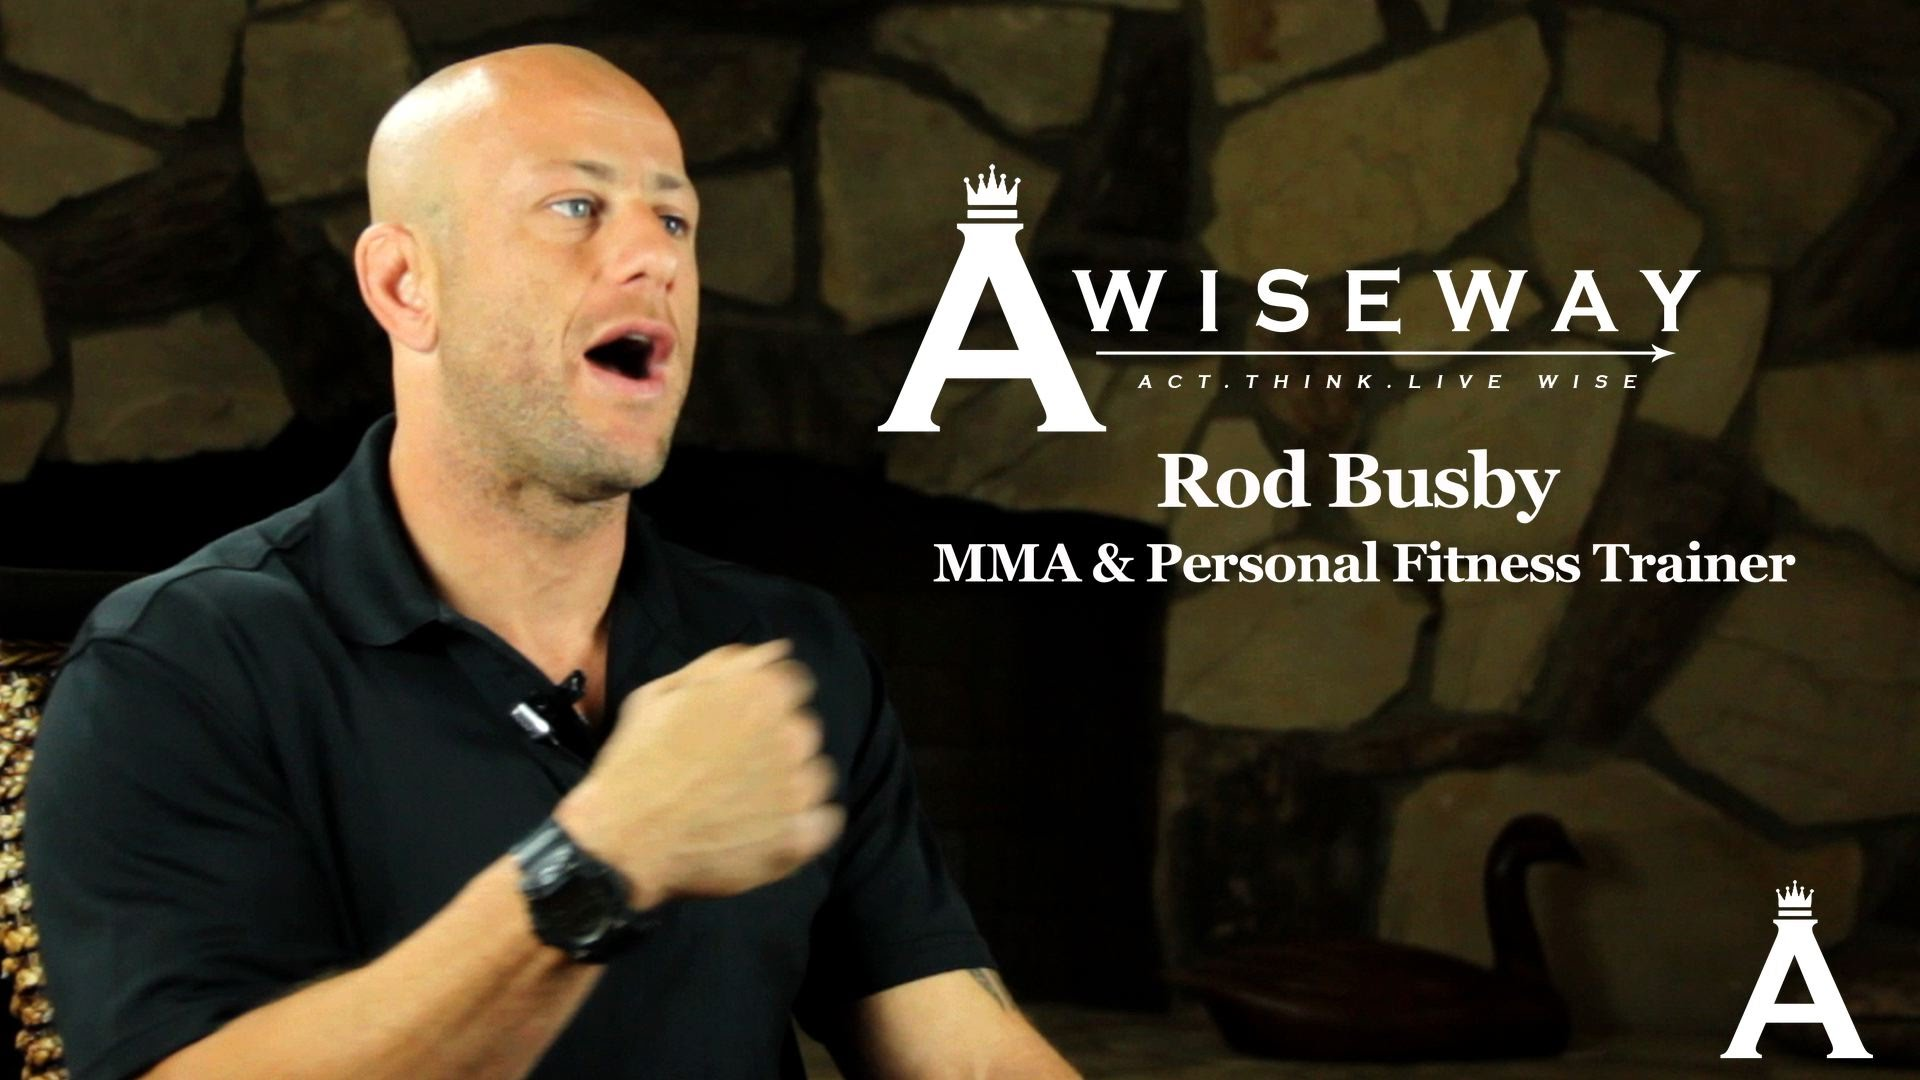 MMA Instructor Explains What MMA is and How It Helps People